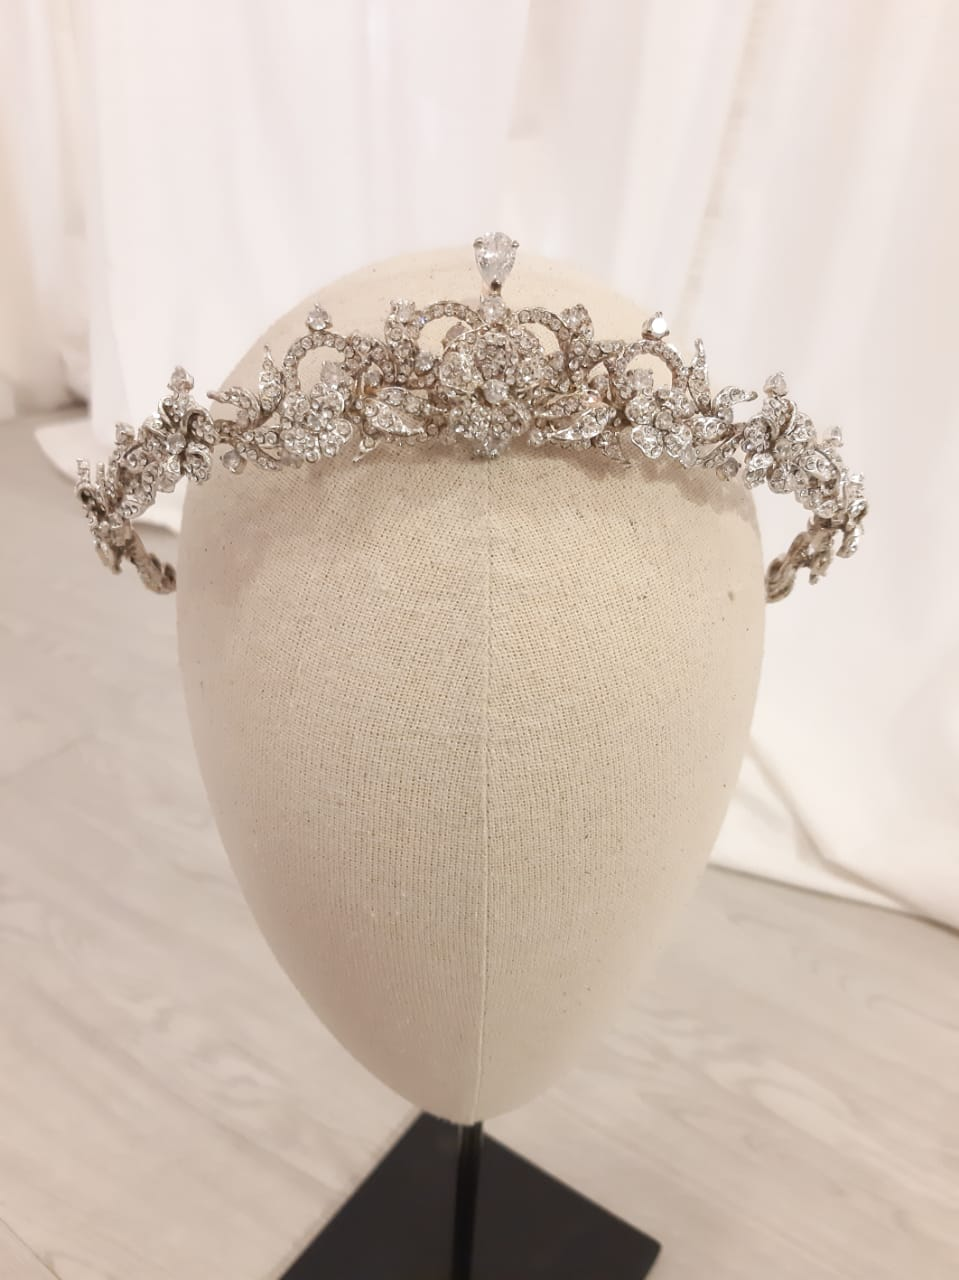 Rent: RINALDY YUNARDI Tiara Crown